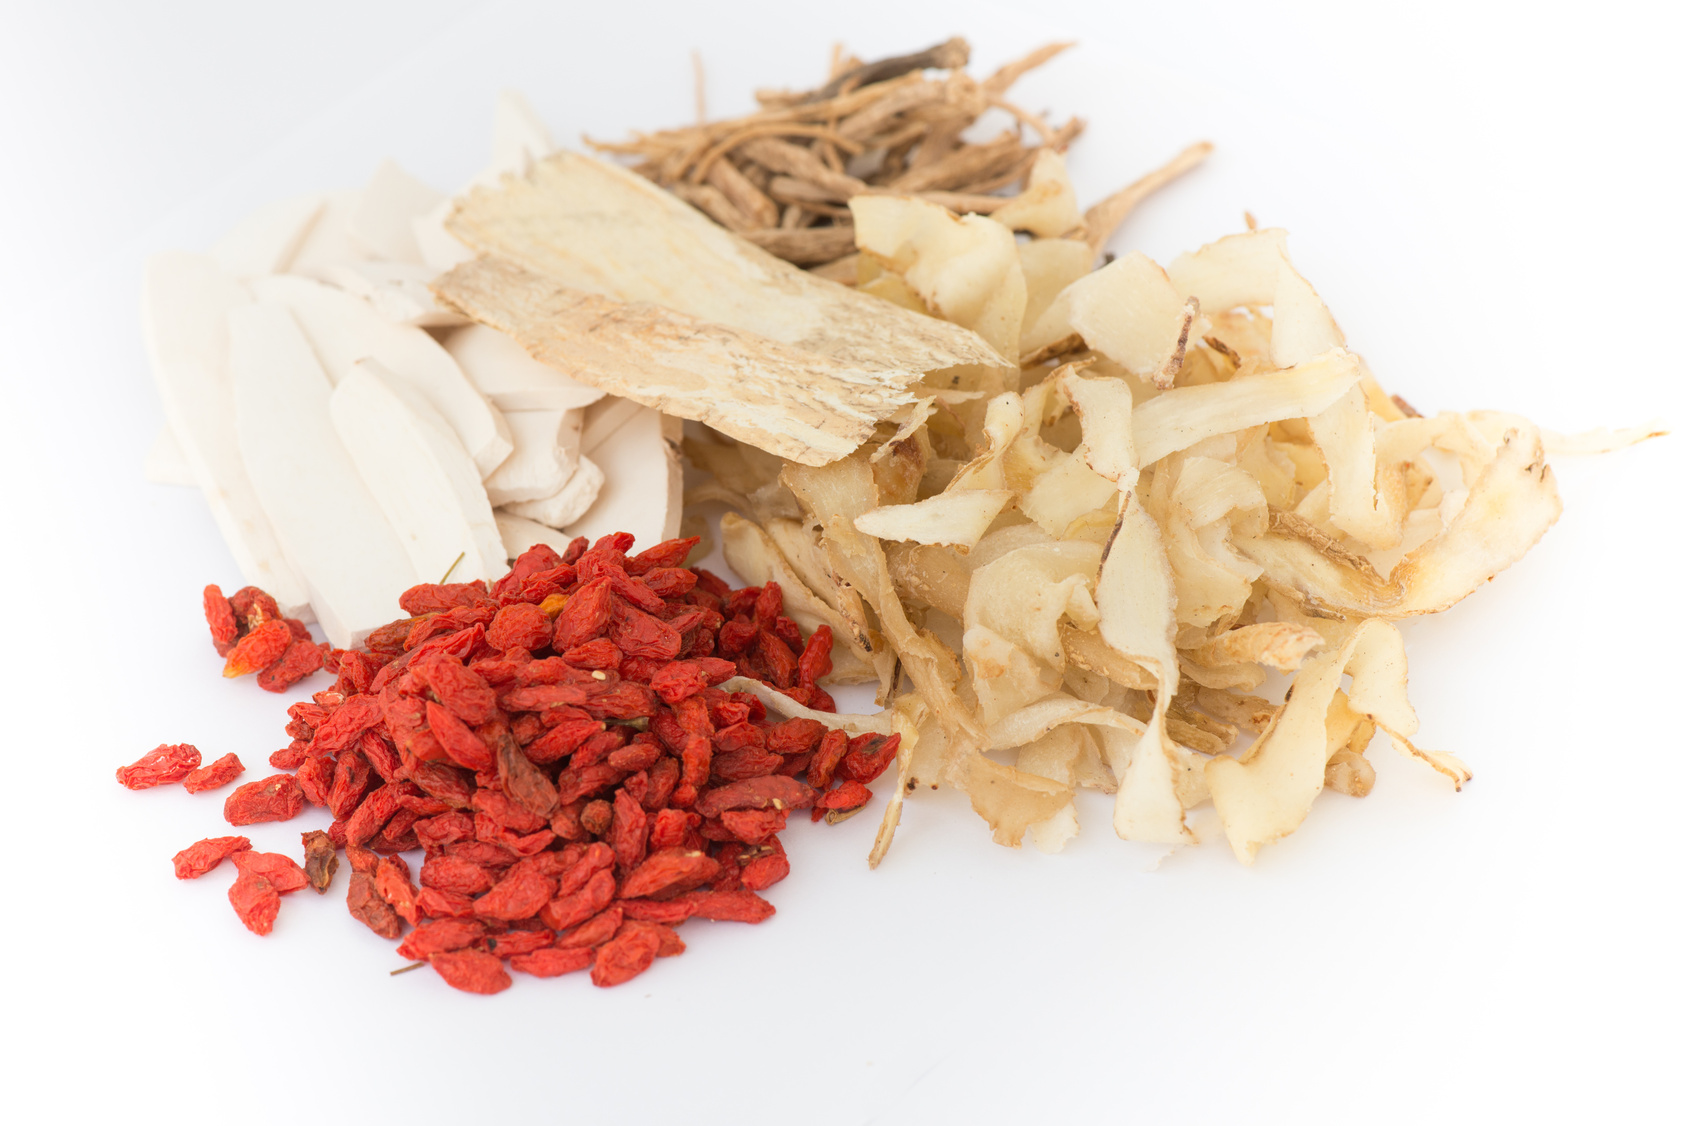 Dried fruit and root chinese herbal medicine